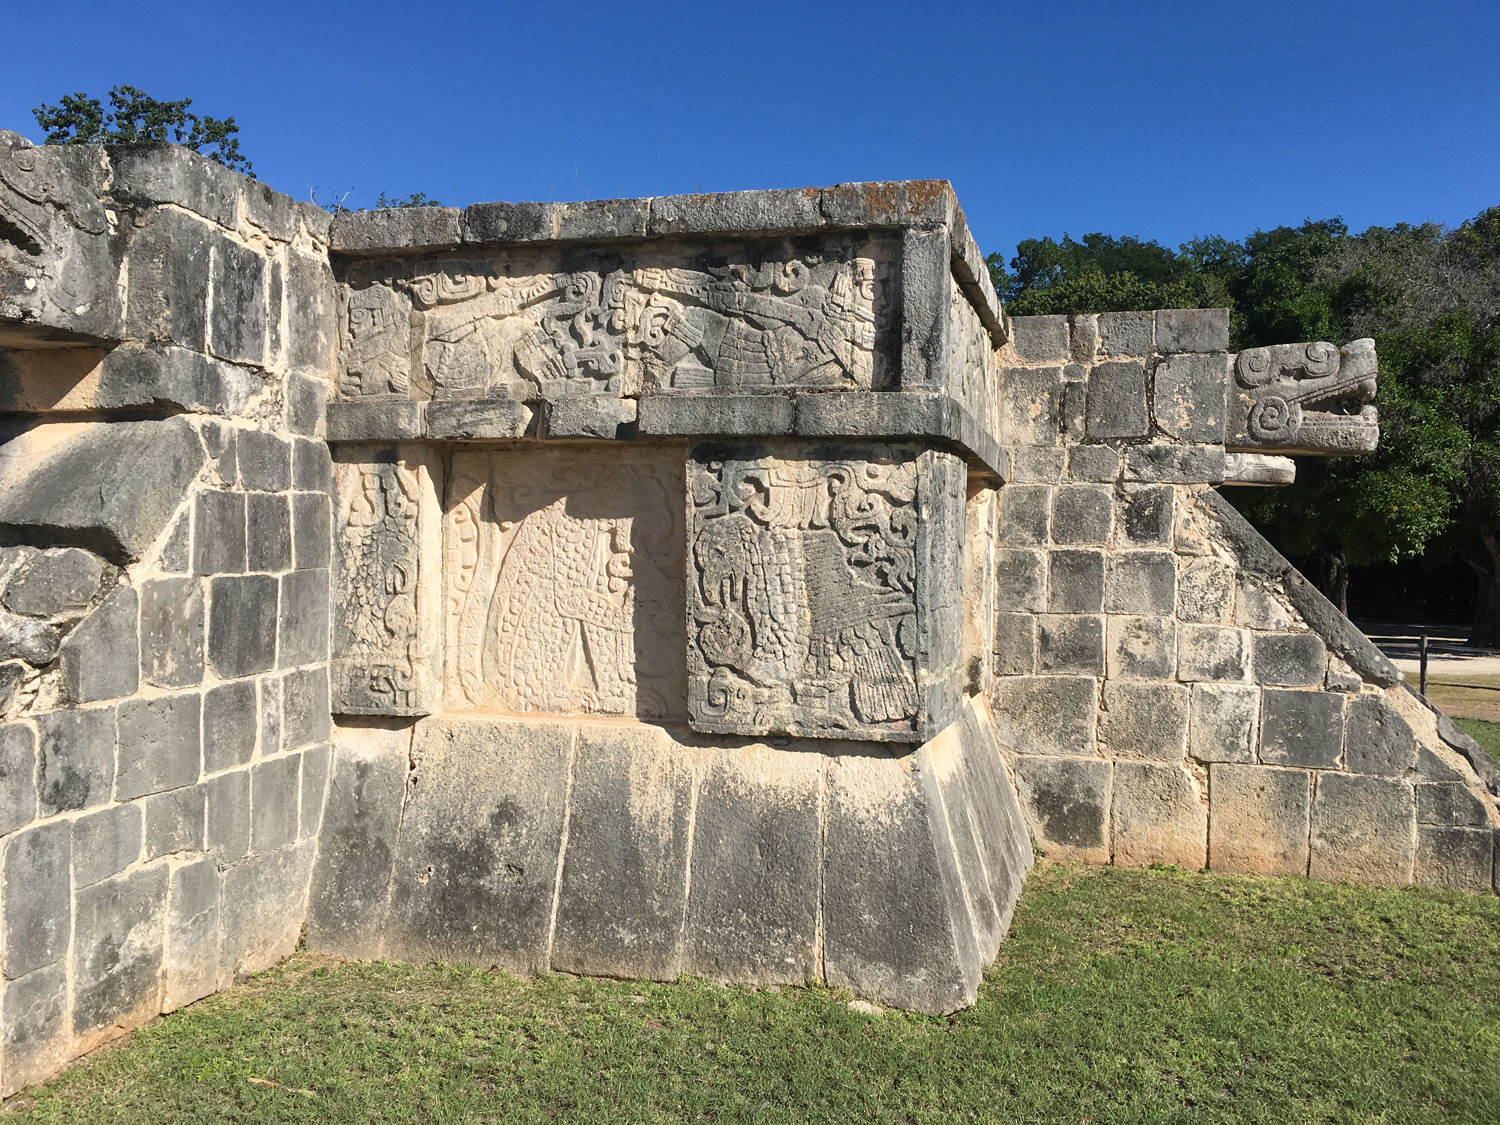 The Platform of Eagles and Jaguars. Left:The jaguar passing the human heart to the eagle, who is devouring it.